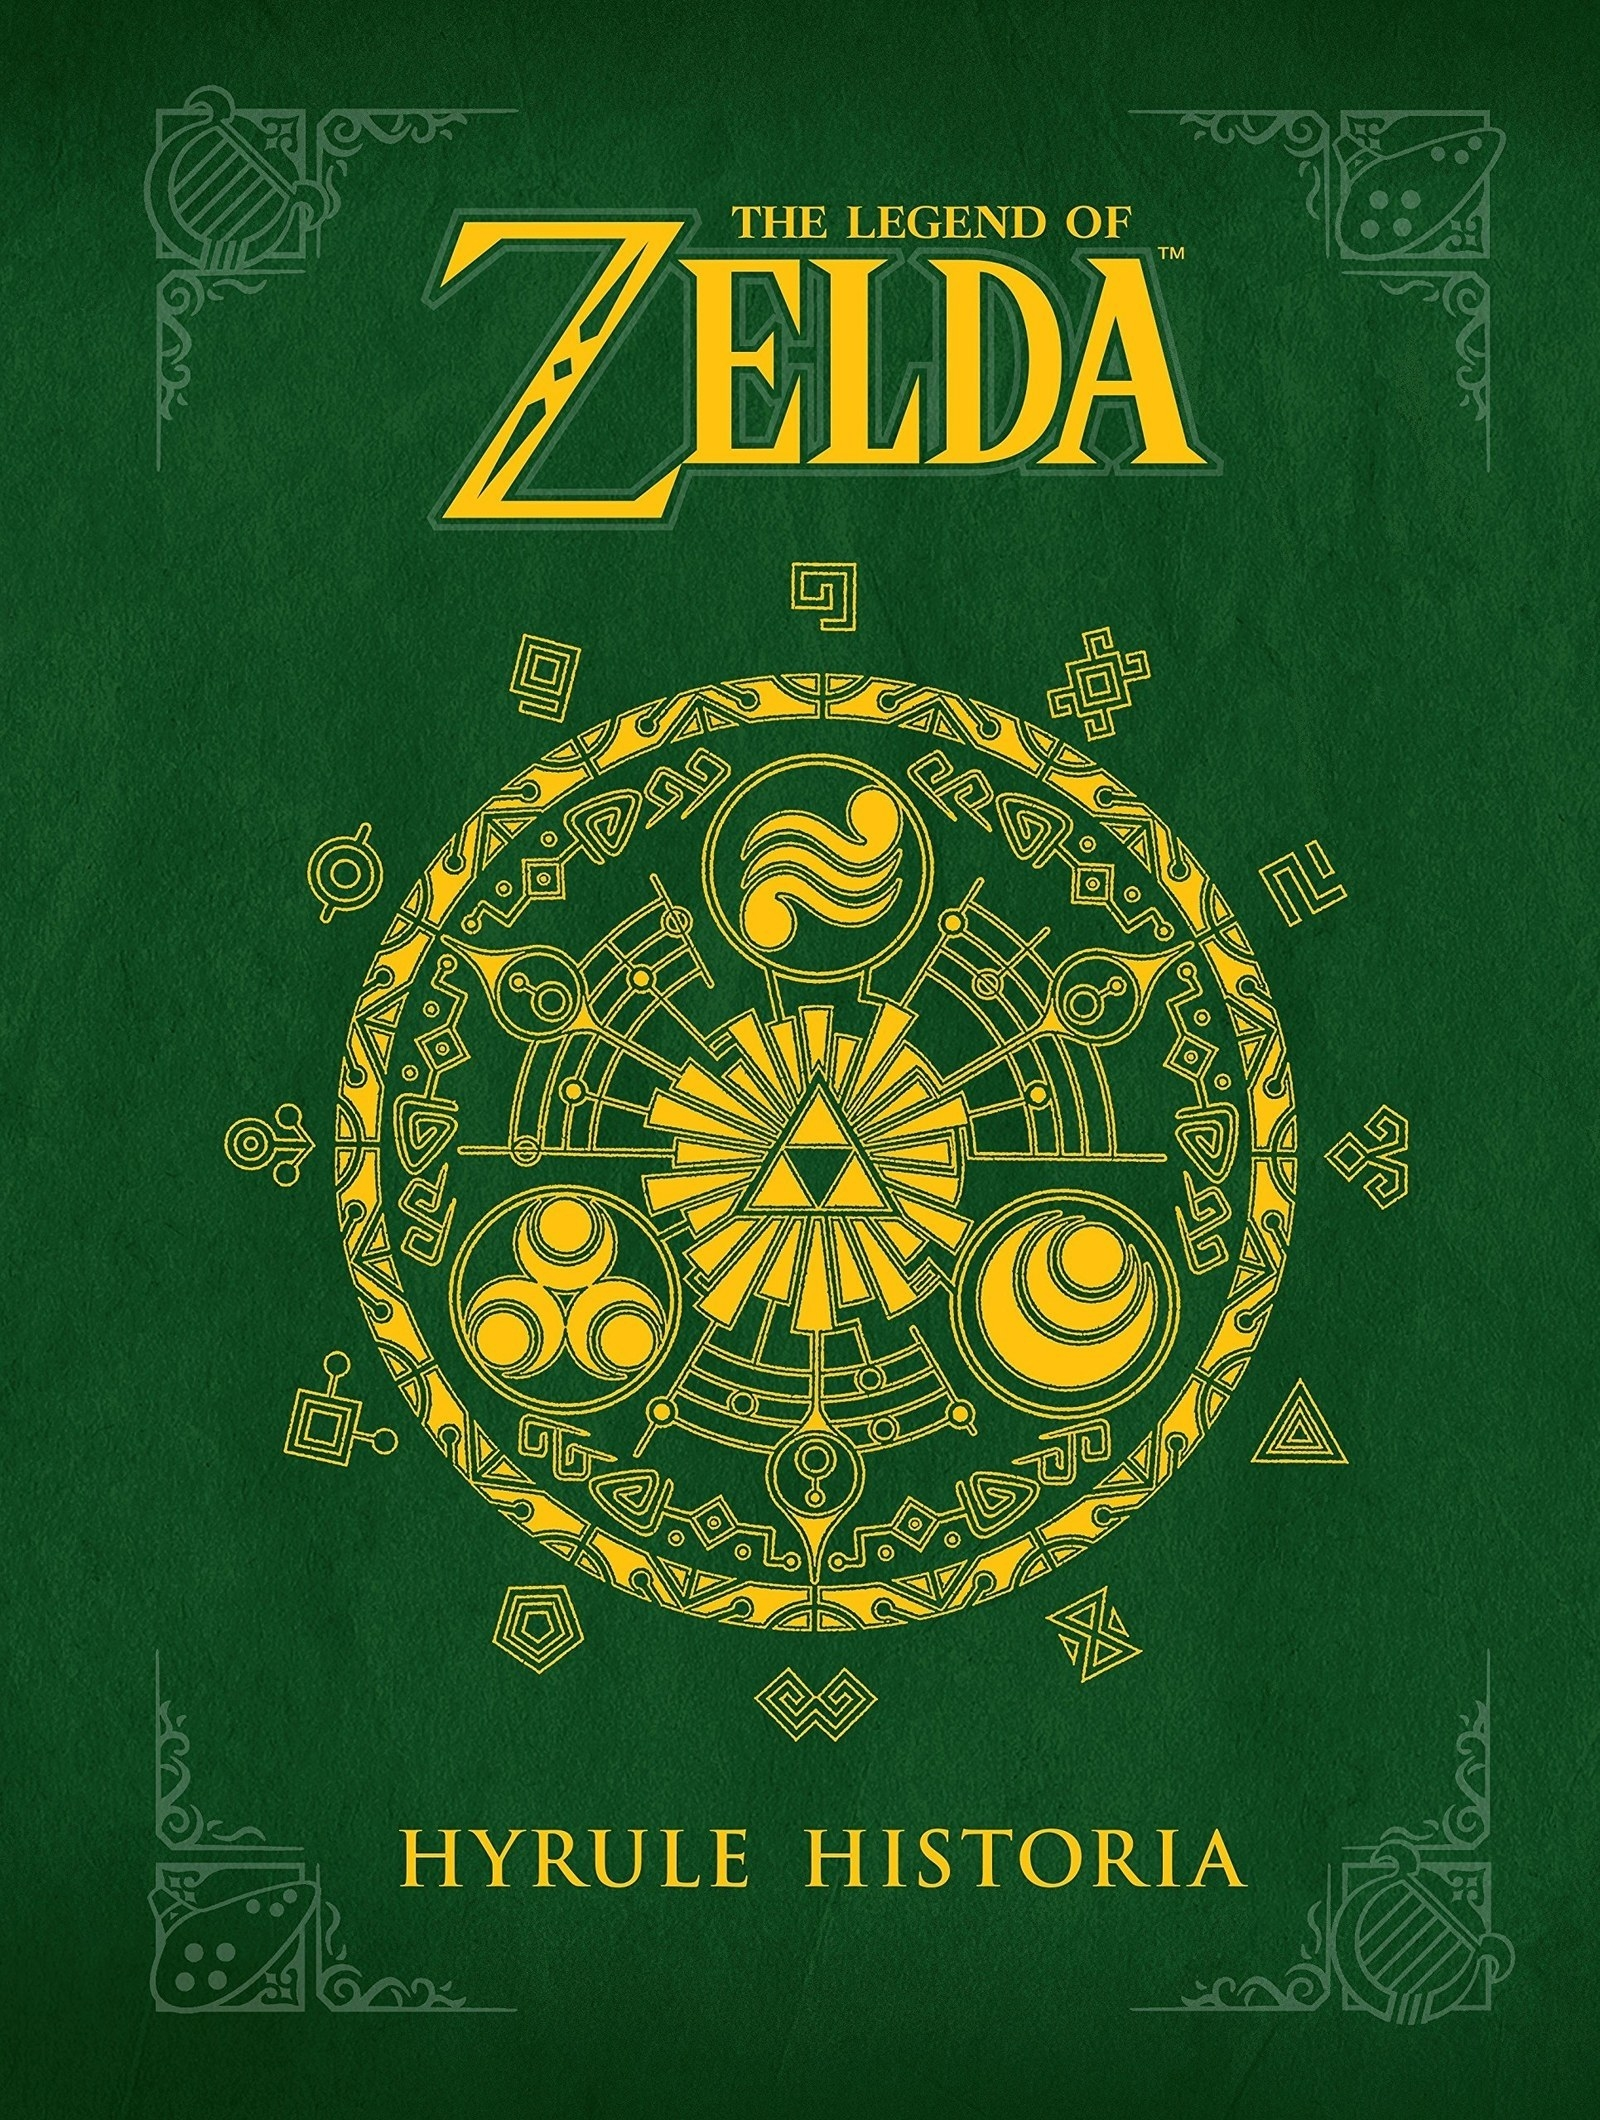 a dark green cover of the book with a symbols from the zelda game in the middle in gold